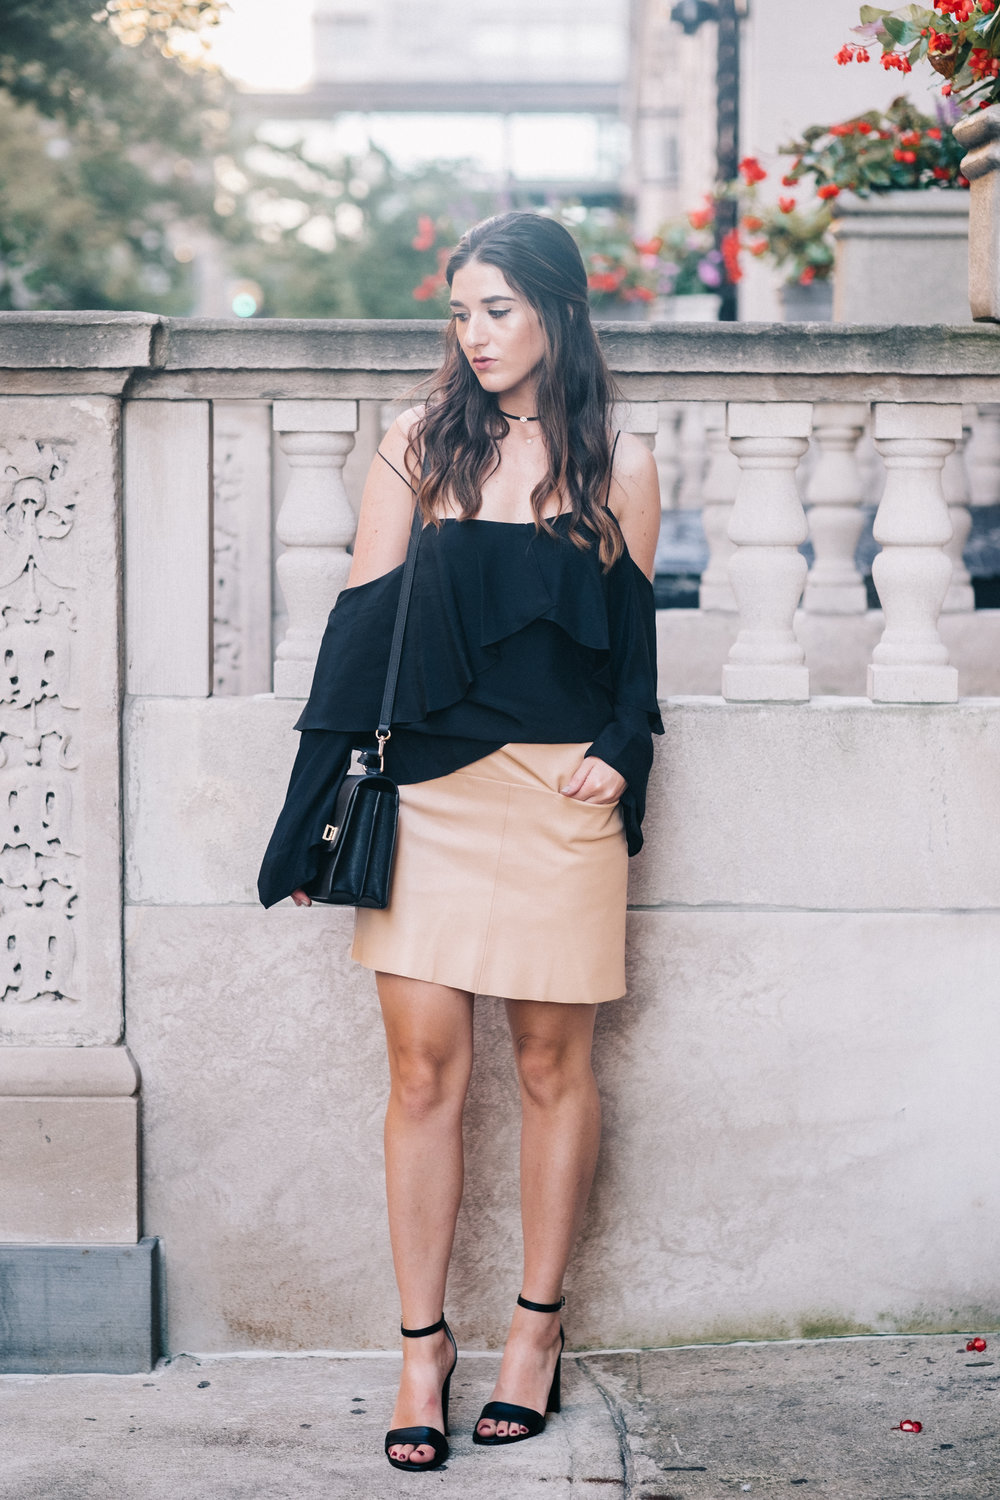 The+Perfect+Everyday+Bag+Henri+Bendel+Louboutins+&+Love+Fashion+Blog+Esther+Santer+NYC+Street+Style+Blogger+Outfit+OOTD+Trendy+Jay+Godfrey+Black+Cold+Shoulder+Top+Pink+Pleather+Skirt+Zara+Ivanka+Trump+Klover+Inspo+Sandals+Heels+Purse+Girl+Women+Hair.jpg